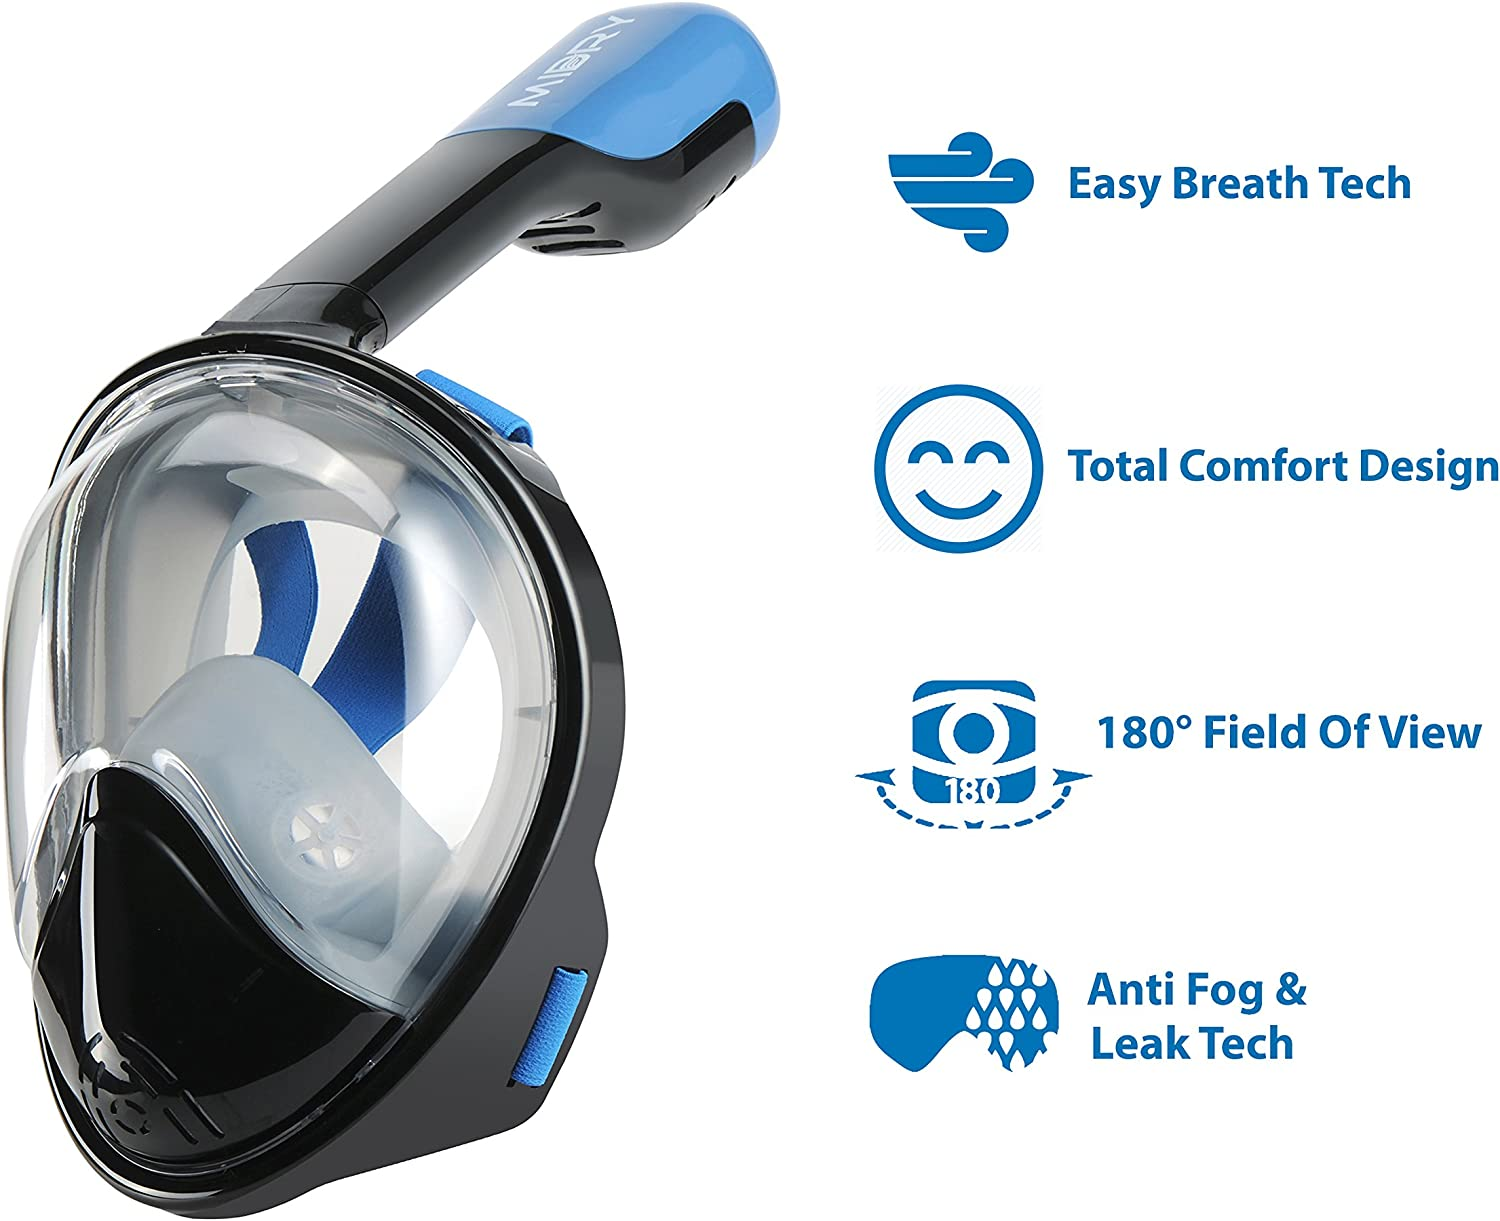 MIDRY Pro Snorkeling Starter Pack Full Face Snorkel Mask Carrying Bag Anti Fog Spray Panoramic 180/° View Easy Breathing Technology